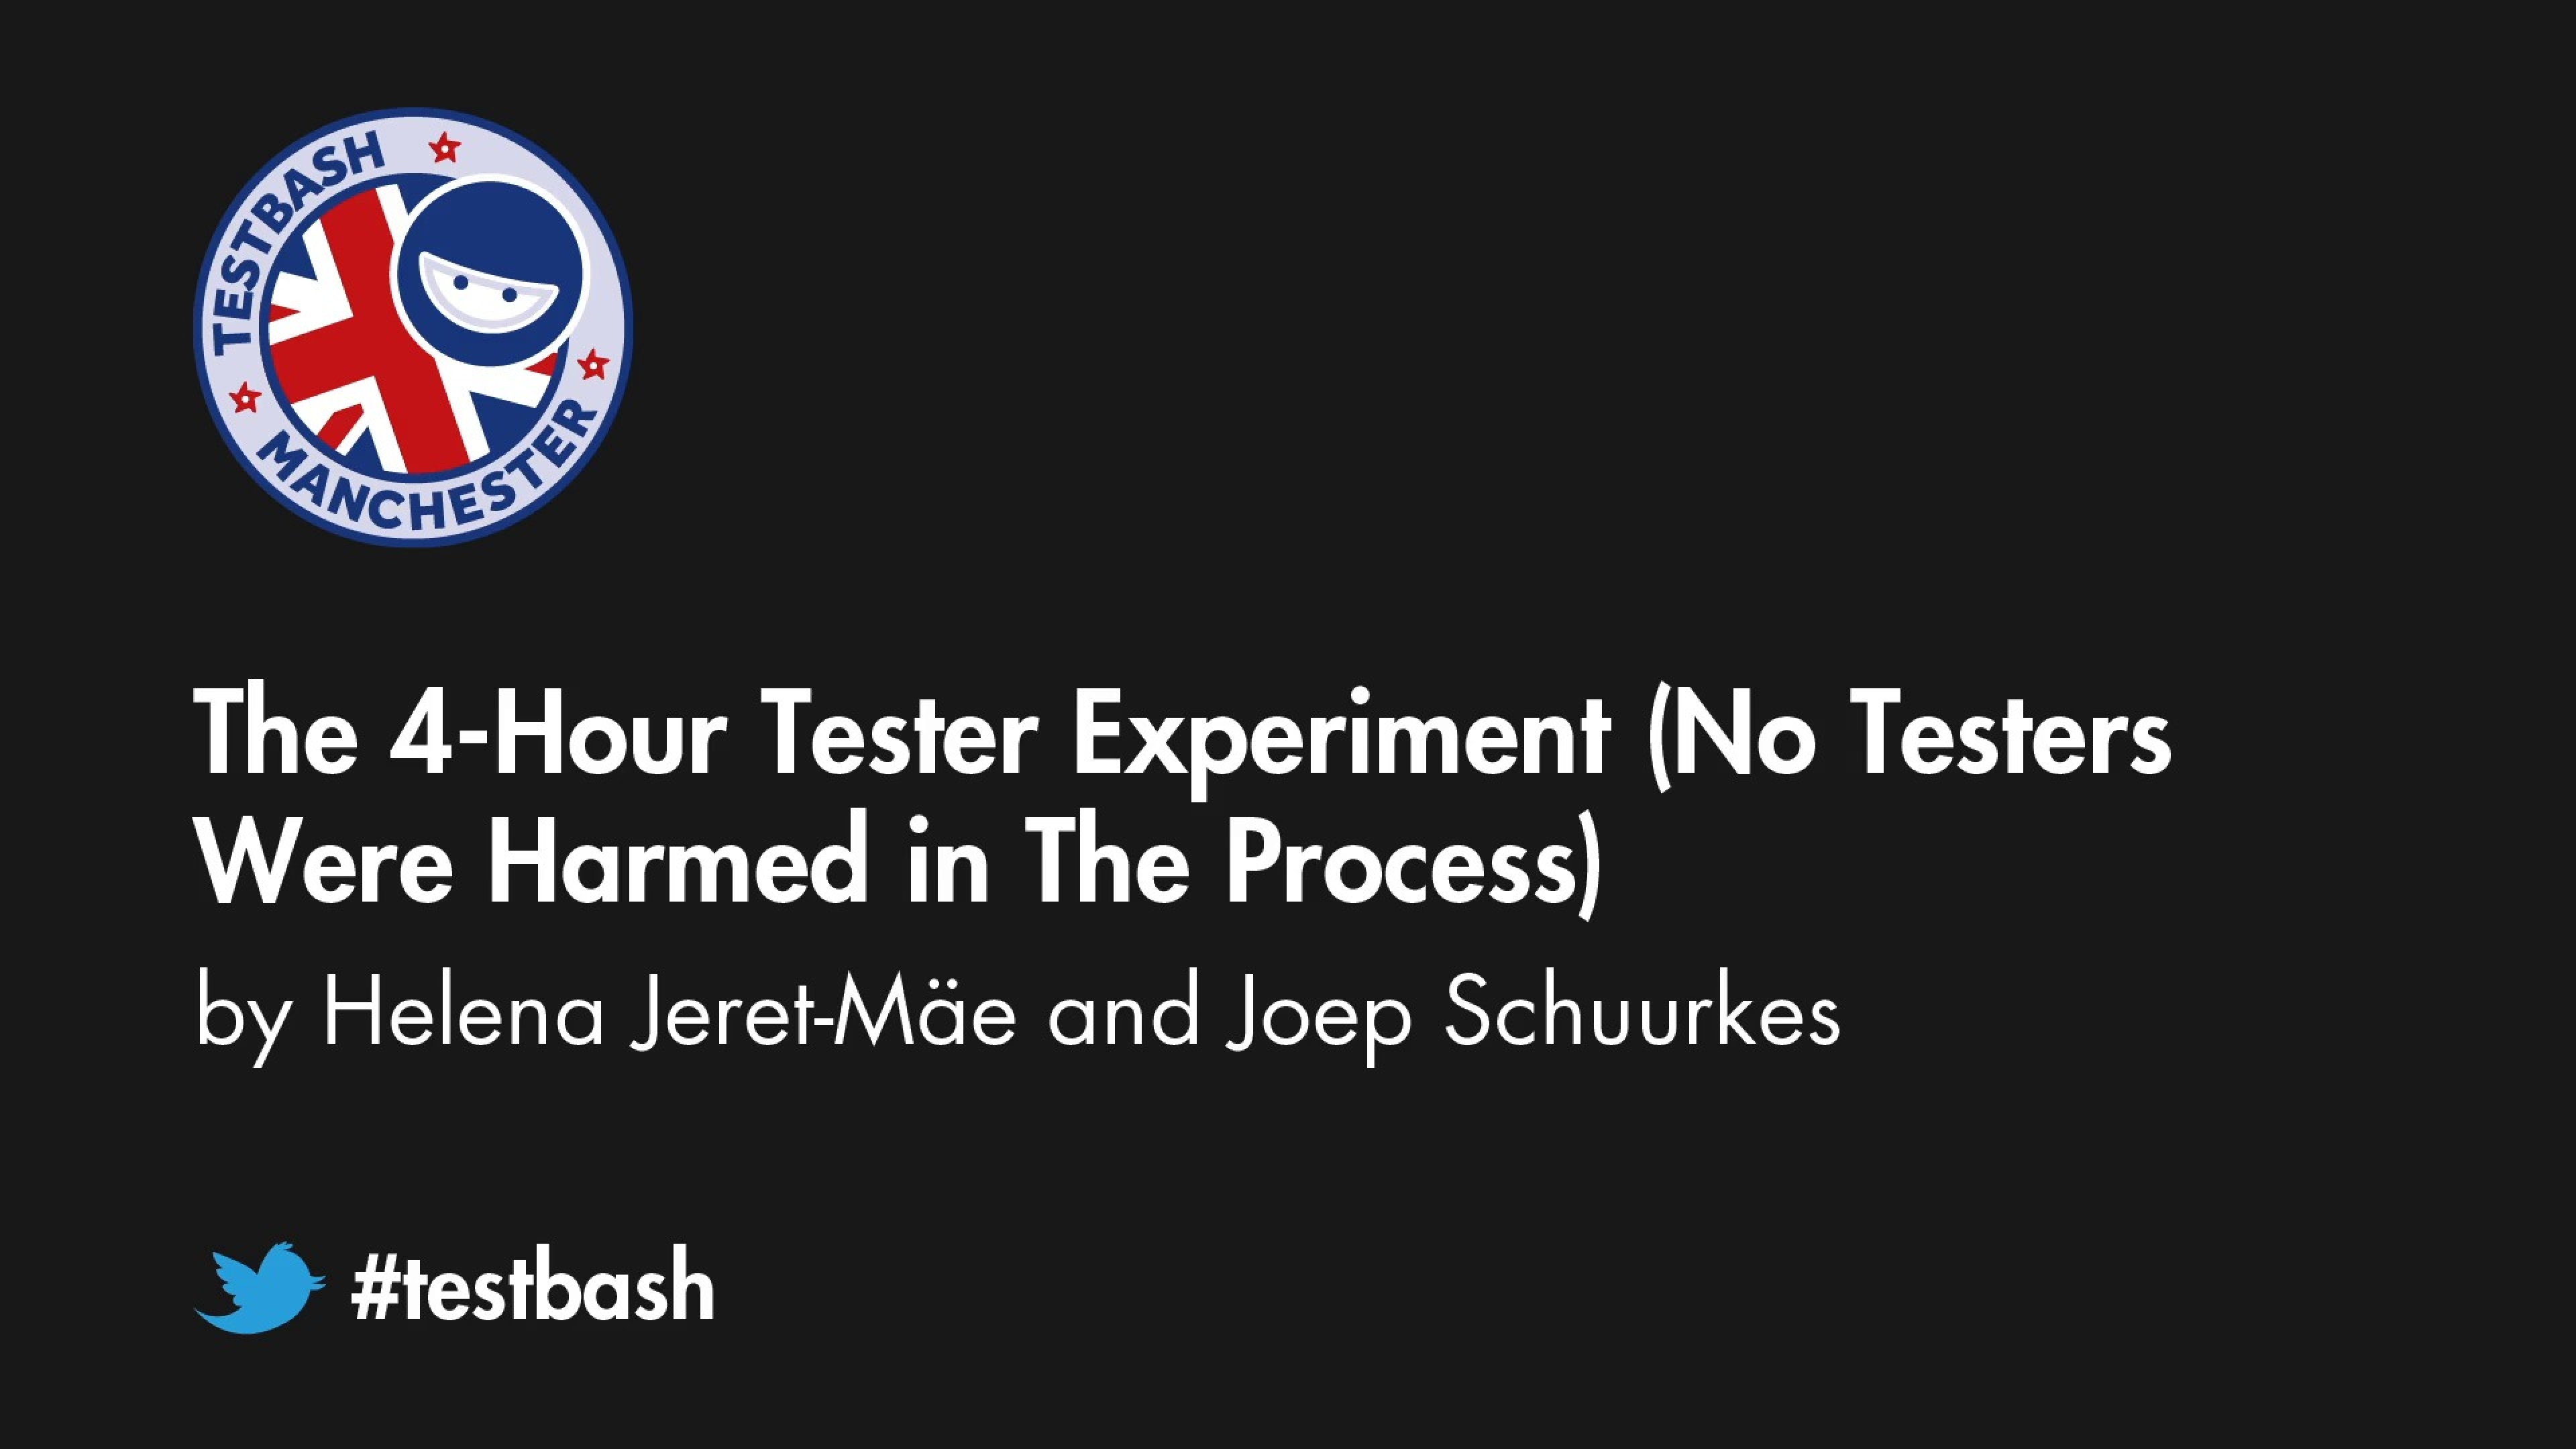 The 4-hour Tester Experiment (No Testers Were Harmed In The Process) – Helena Jeret-Mäe and Joep Schuurkes